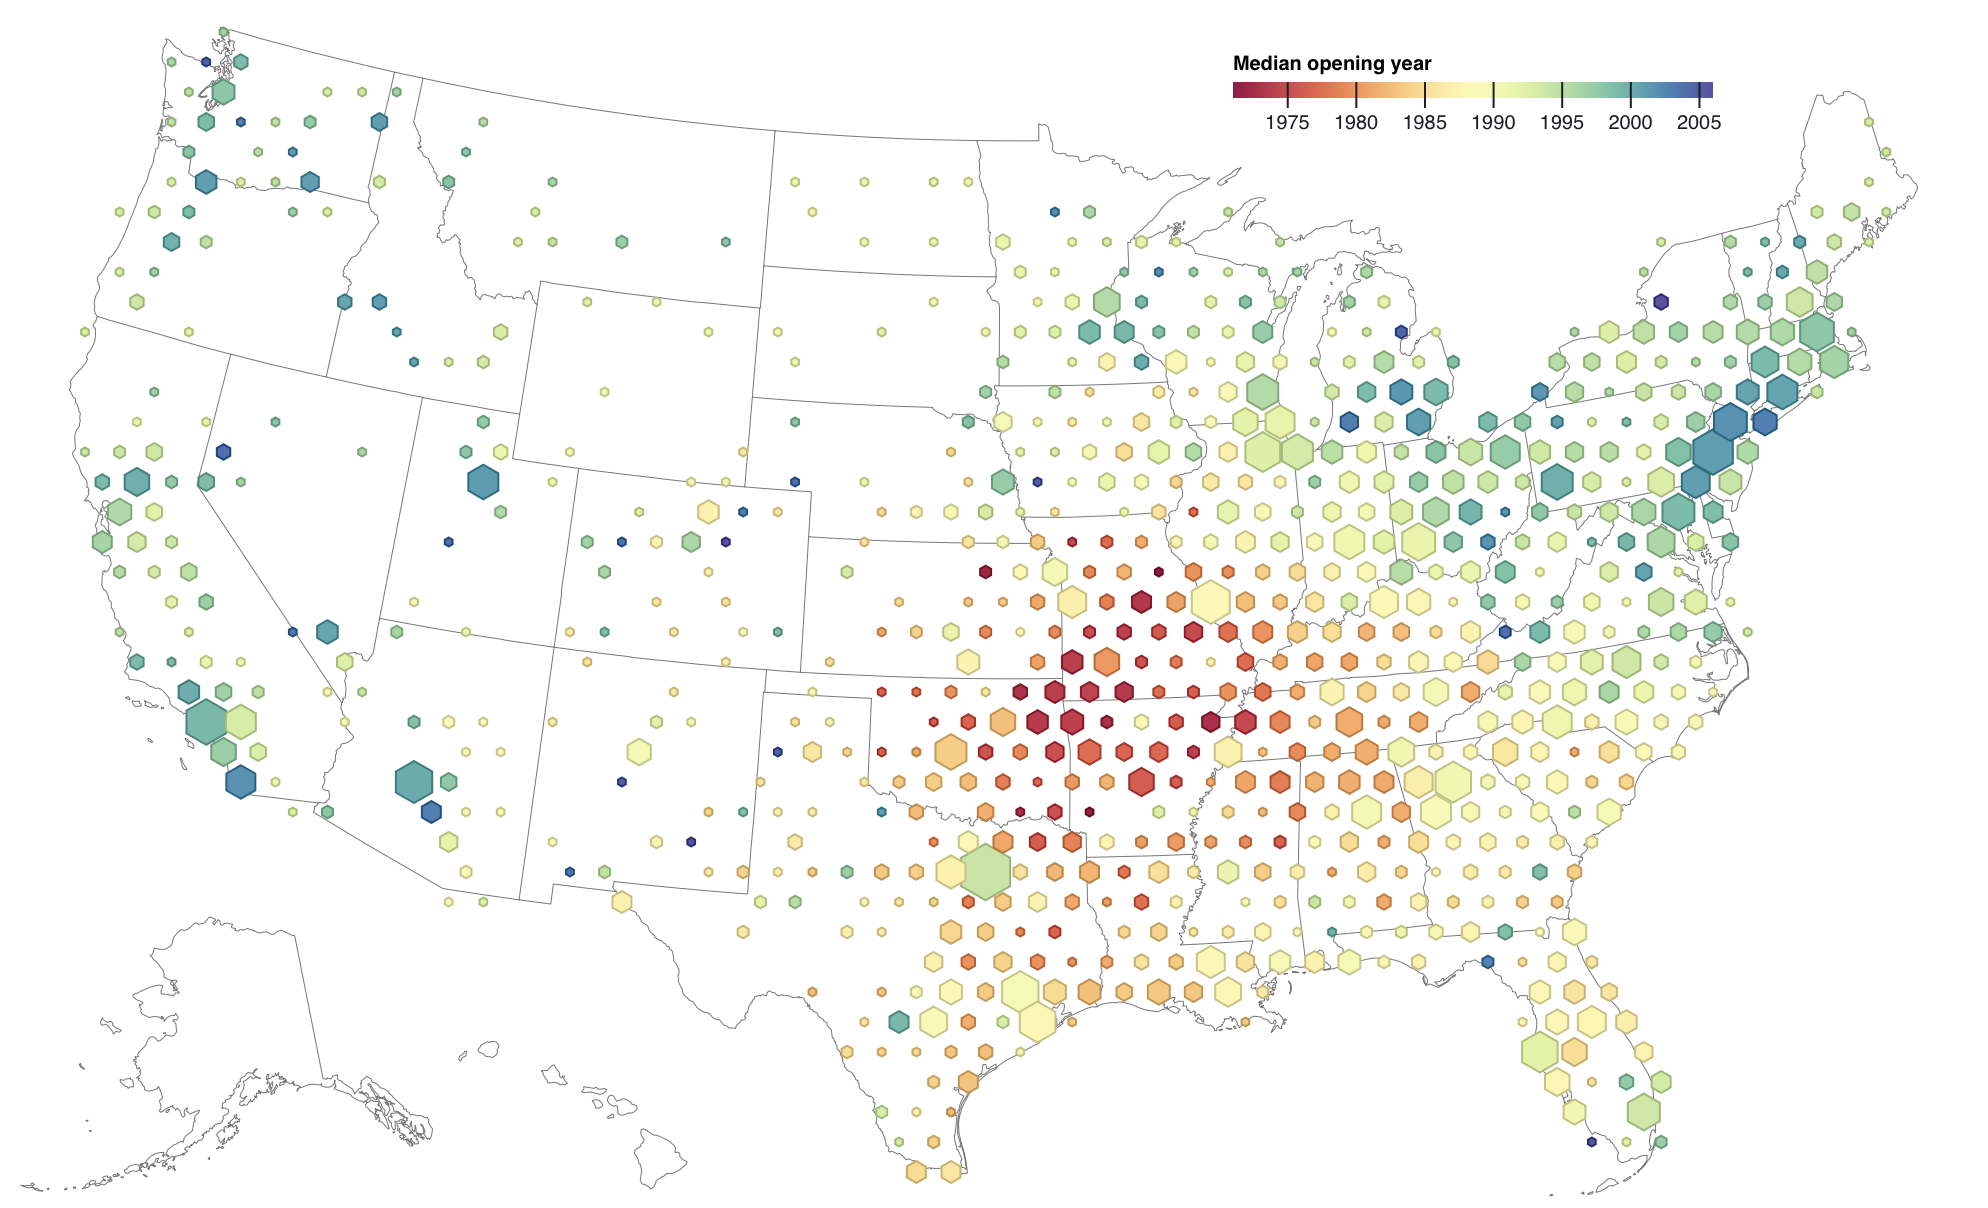 Geospatial Data Visualization with d3